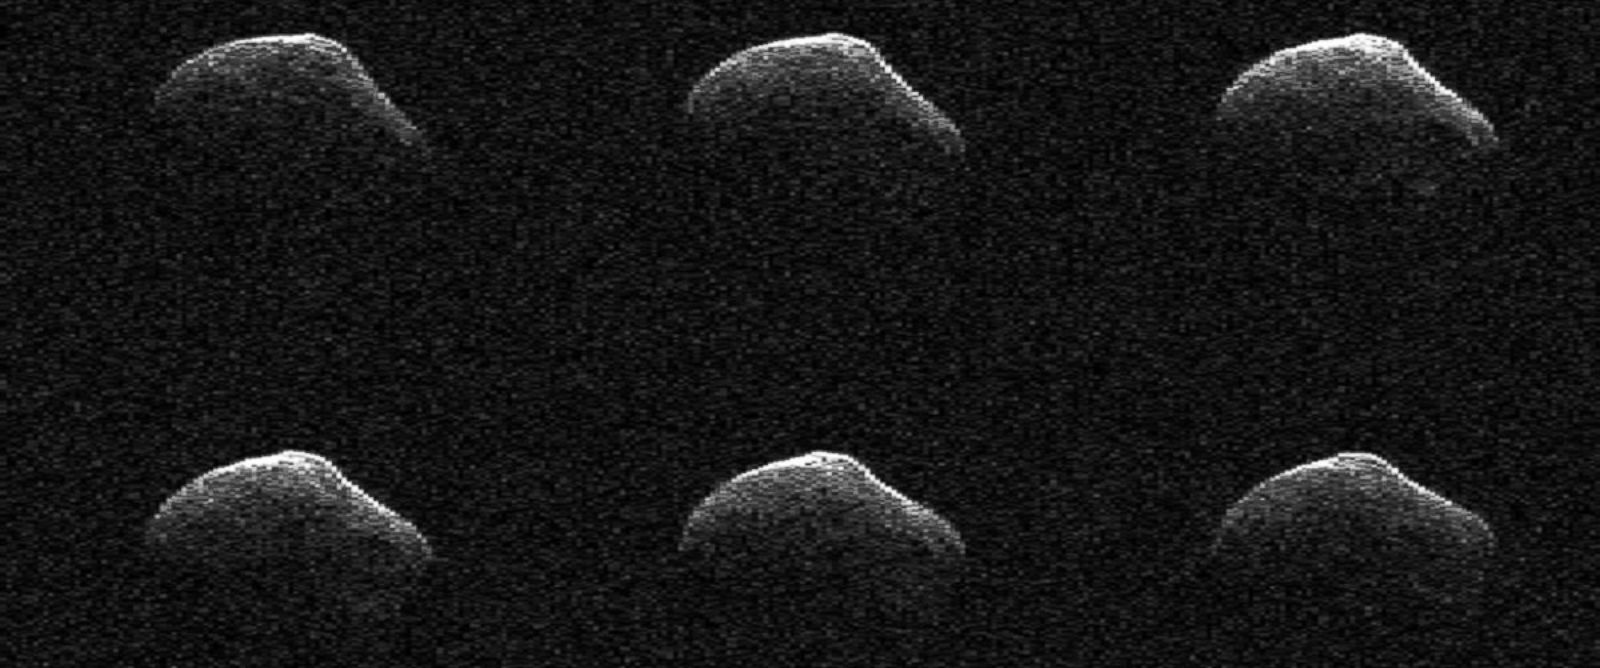 Comet's Close Brush With Earth Seen in Radar Images - ABC News